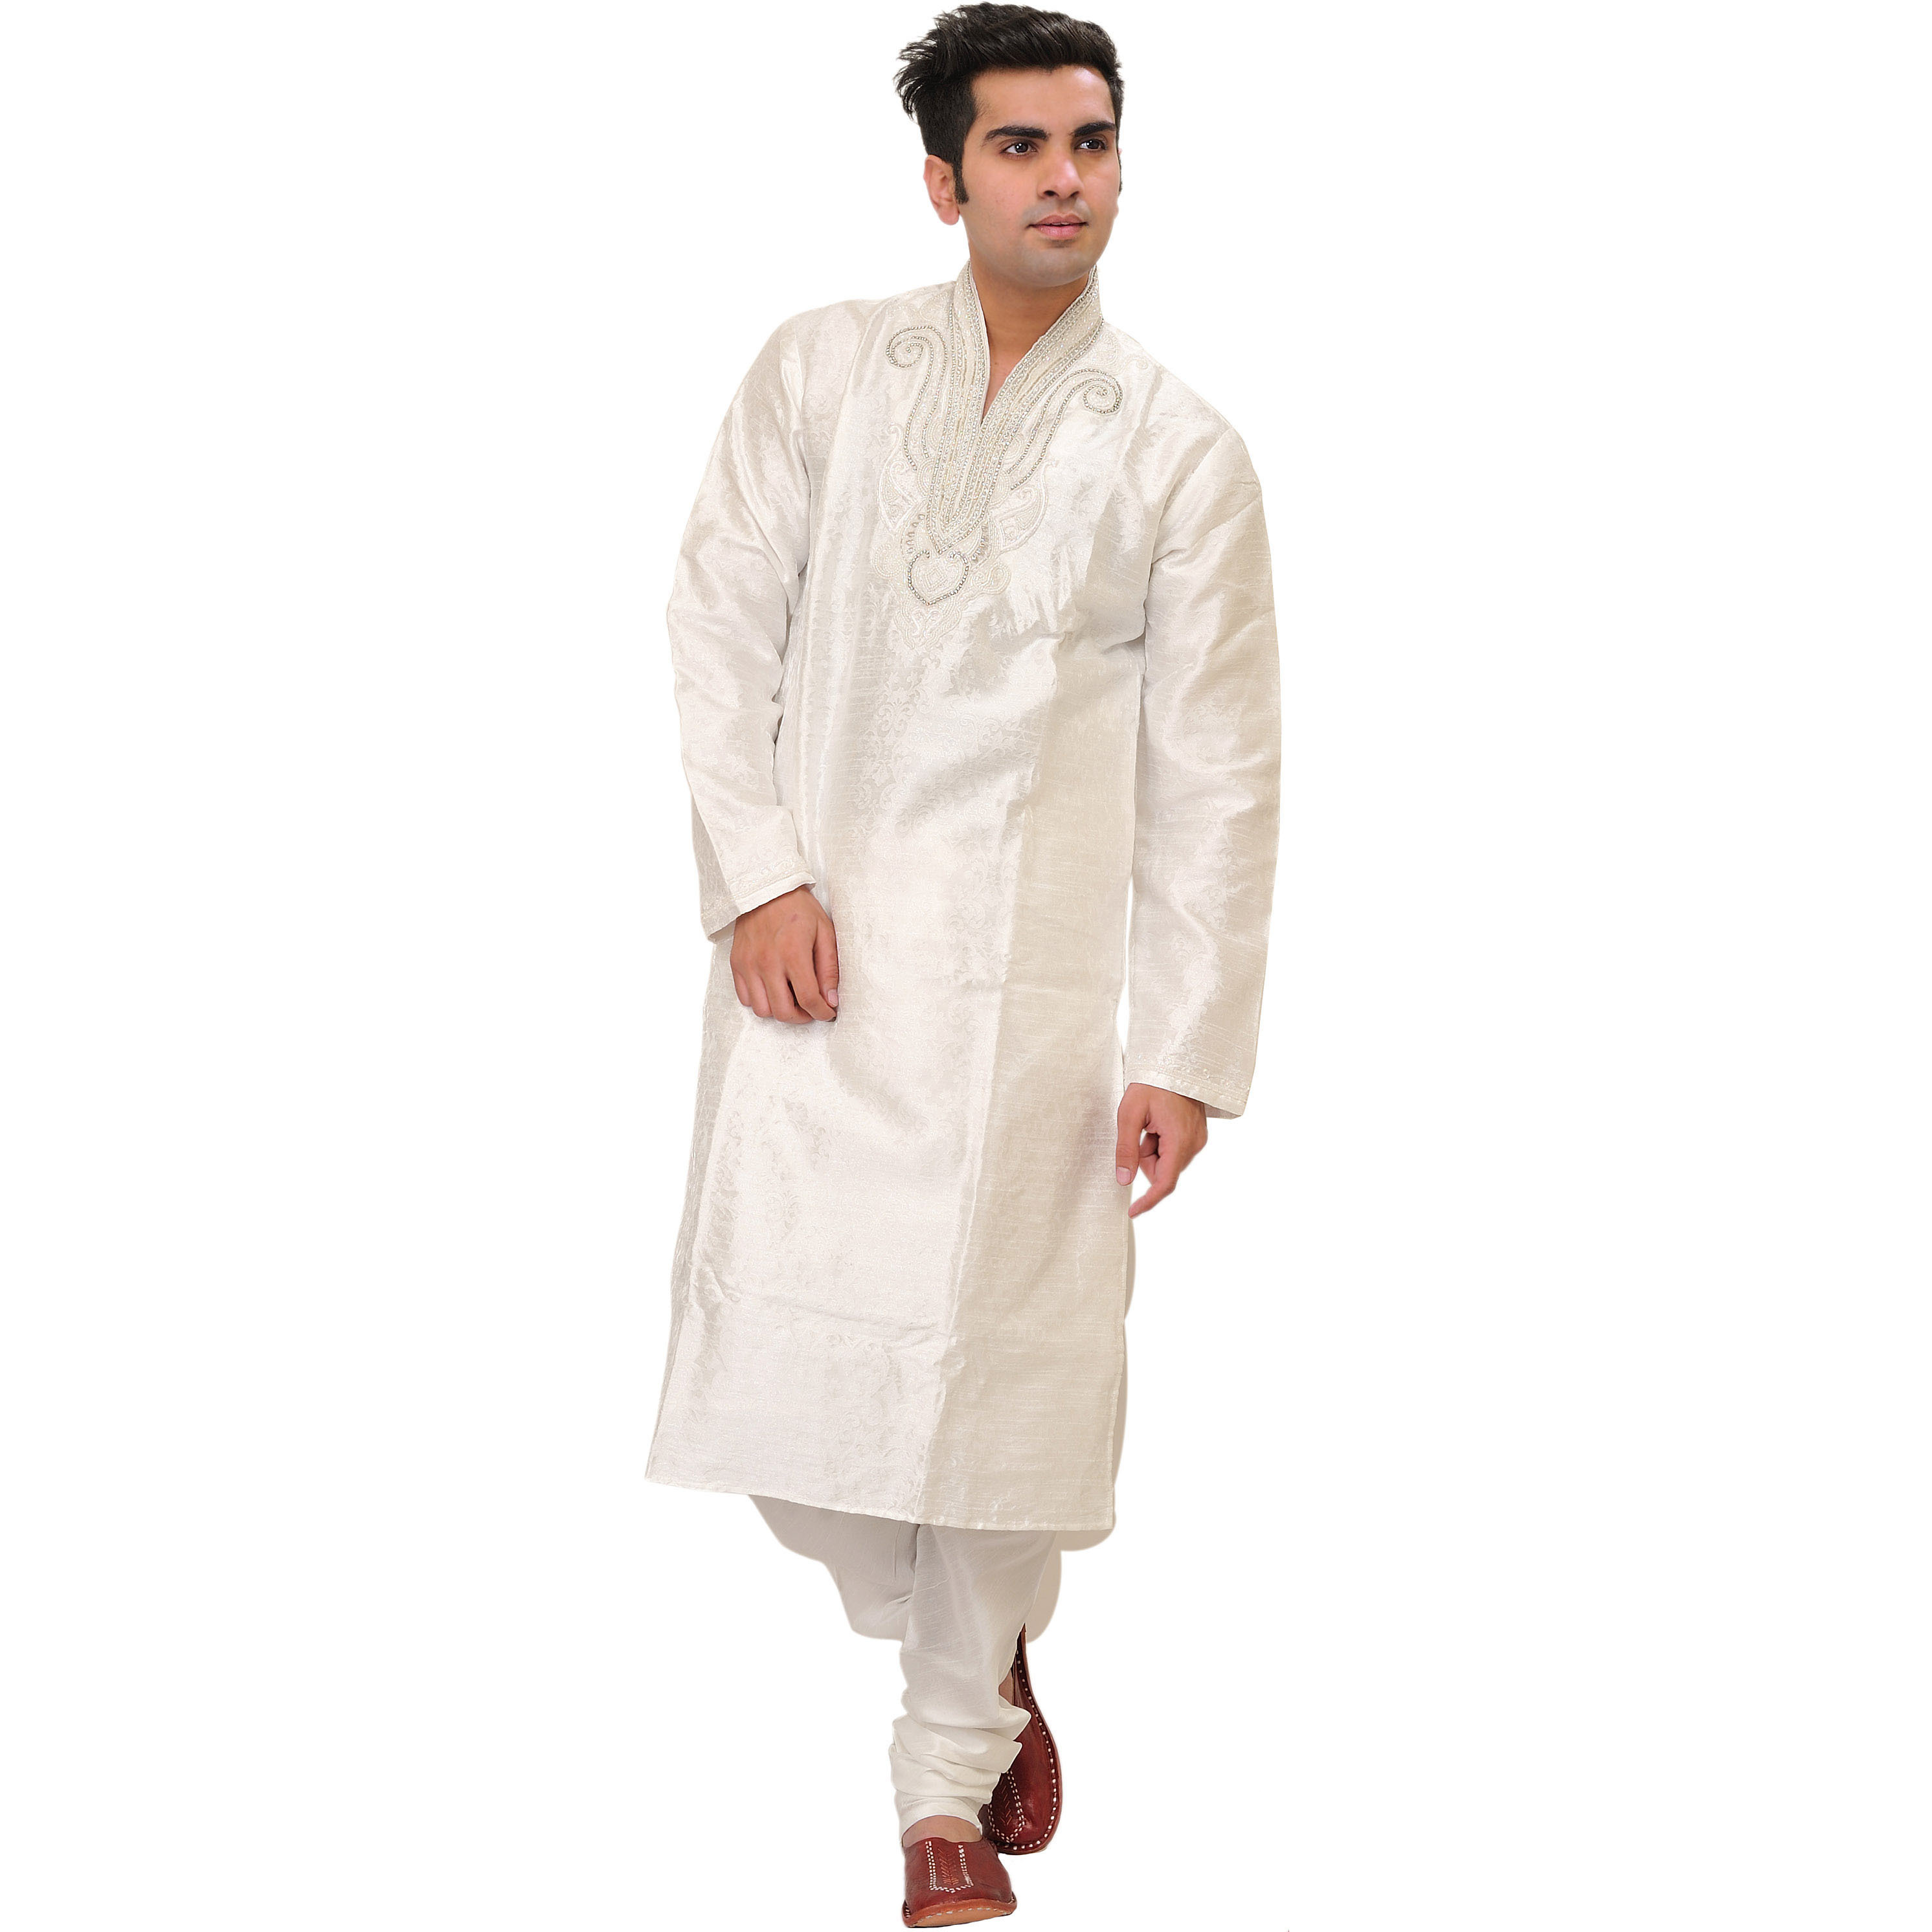 Bright-White Wedding Kurta Pajama Set with Floral Weave and Beads-Embroidery by Hand